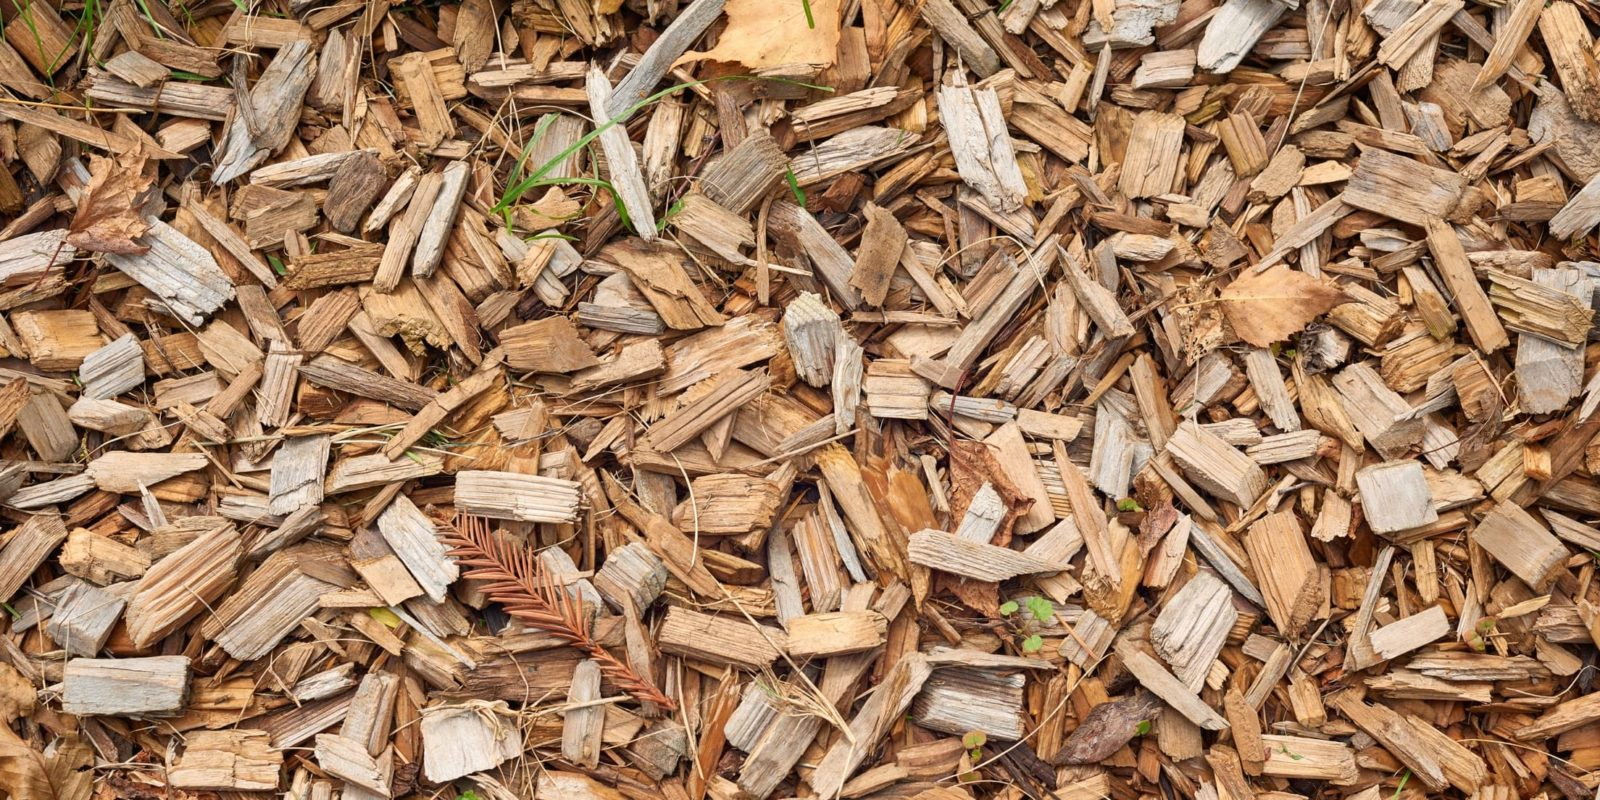 cedar wood chips covering the ground